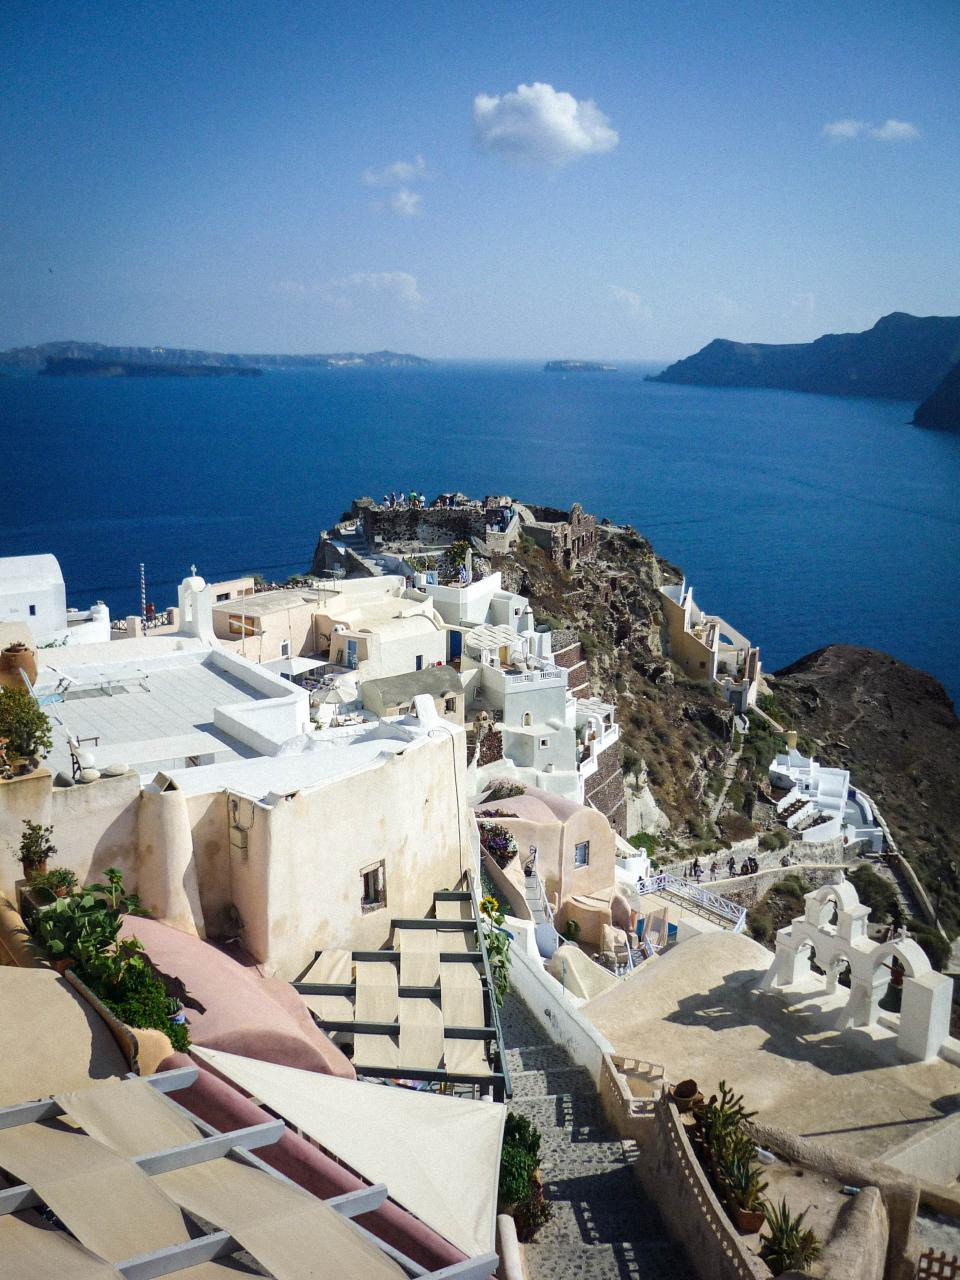 Oia Santorini Greece buildings architecture city town coast water sea ocean mountains hills